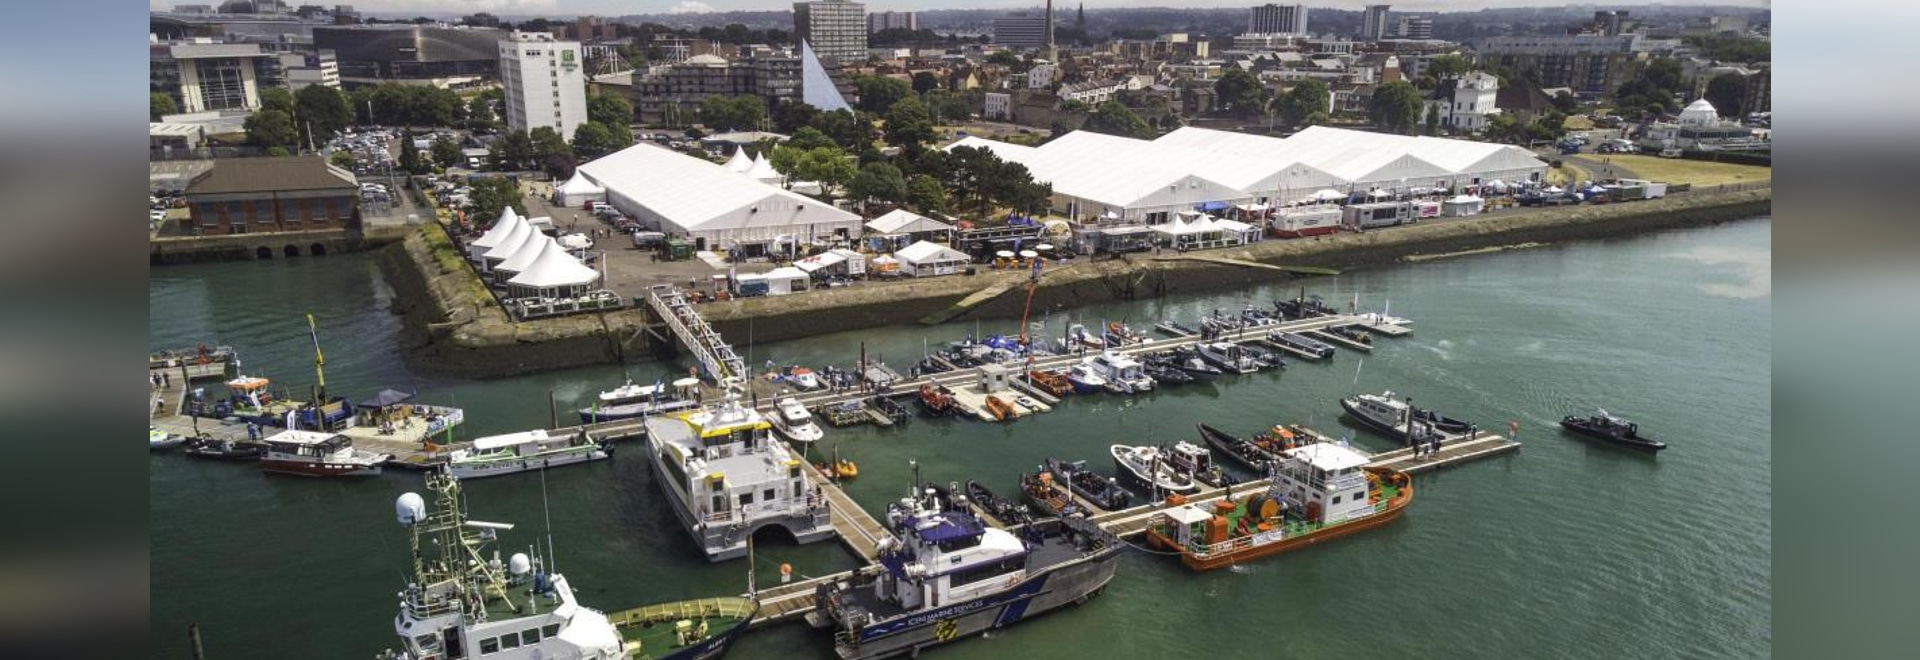 Seawork 2019 expected to attract thousands